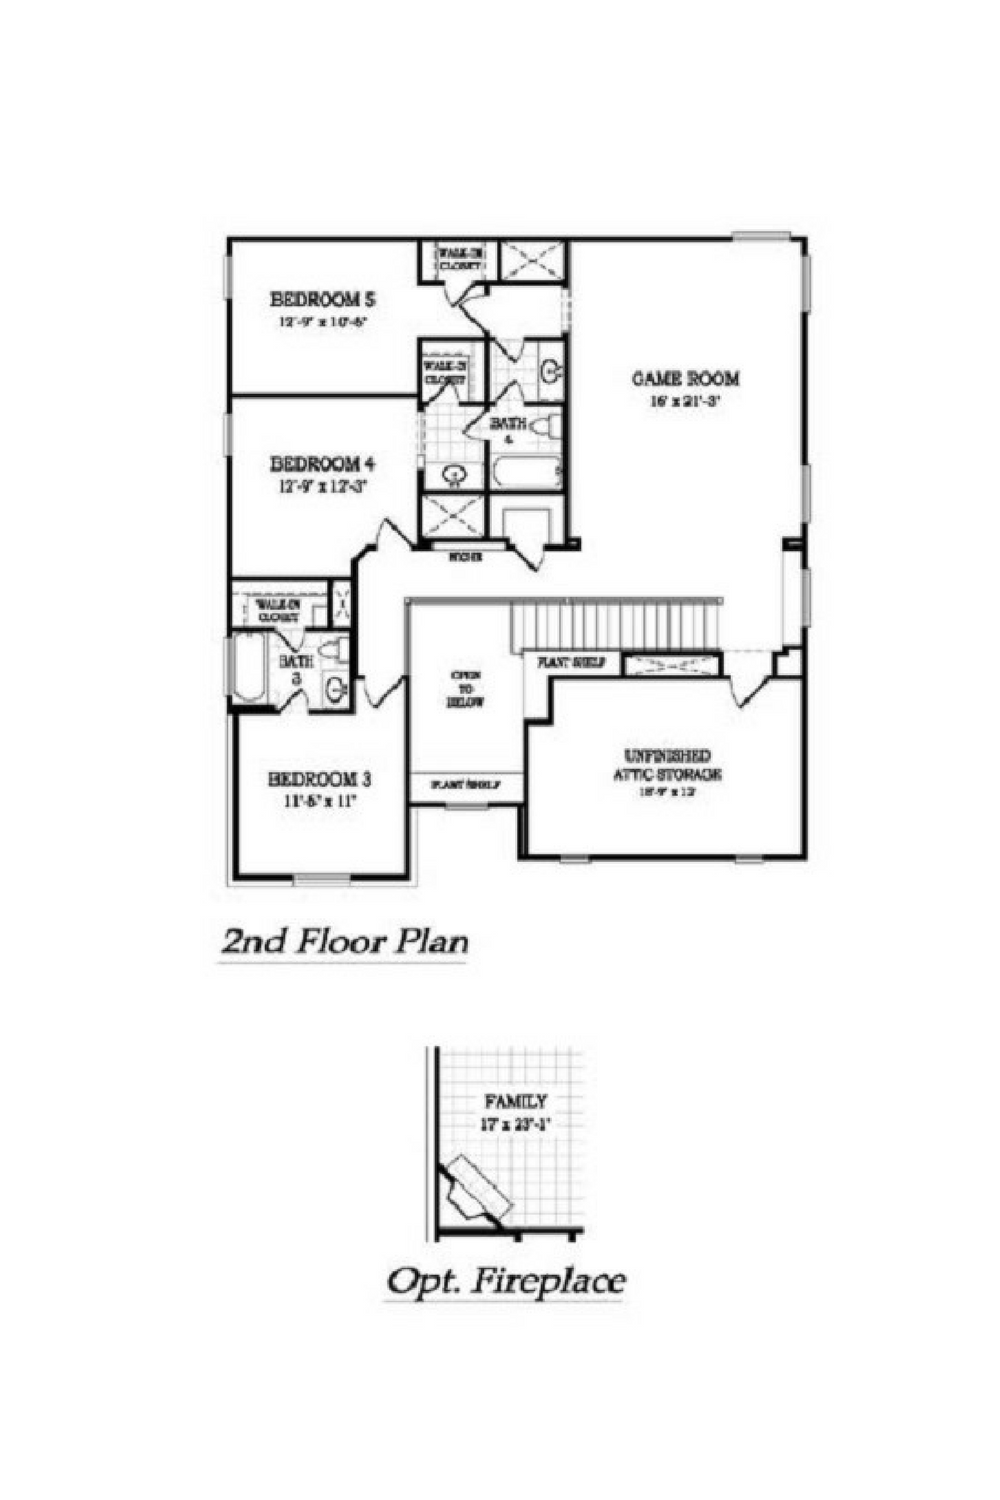 archer second floor plan.png